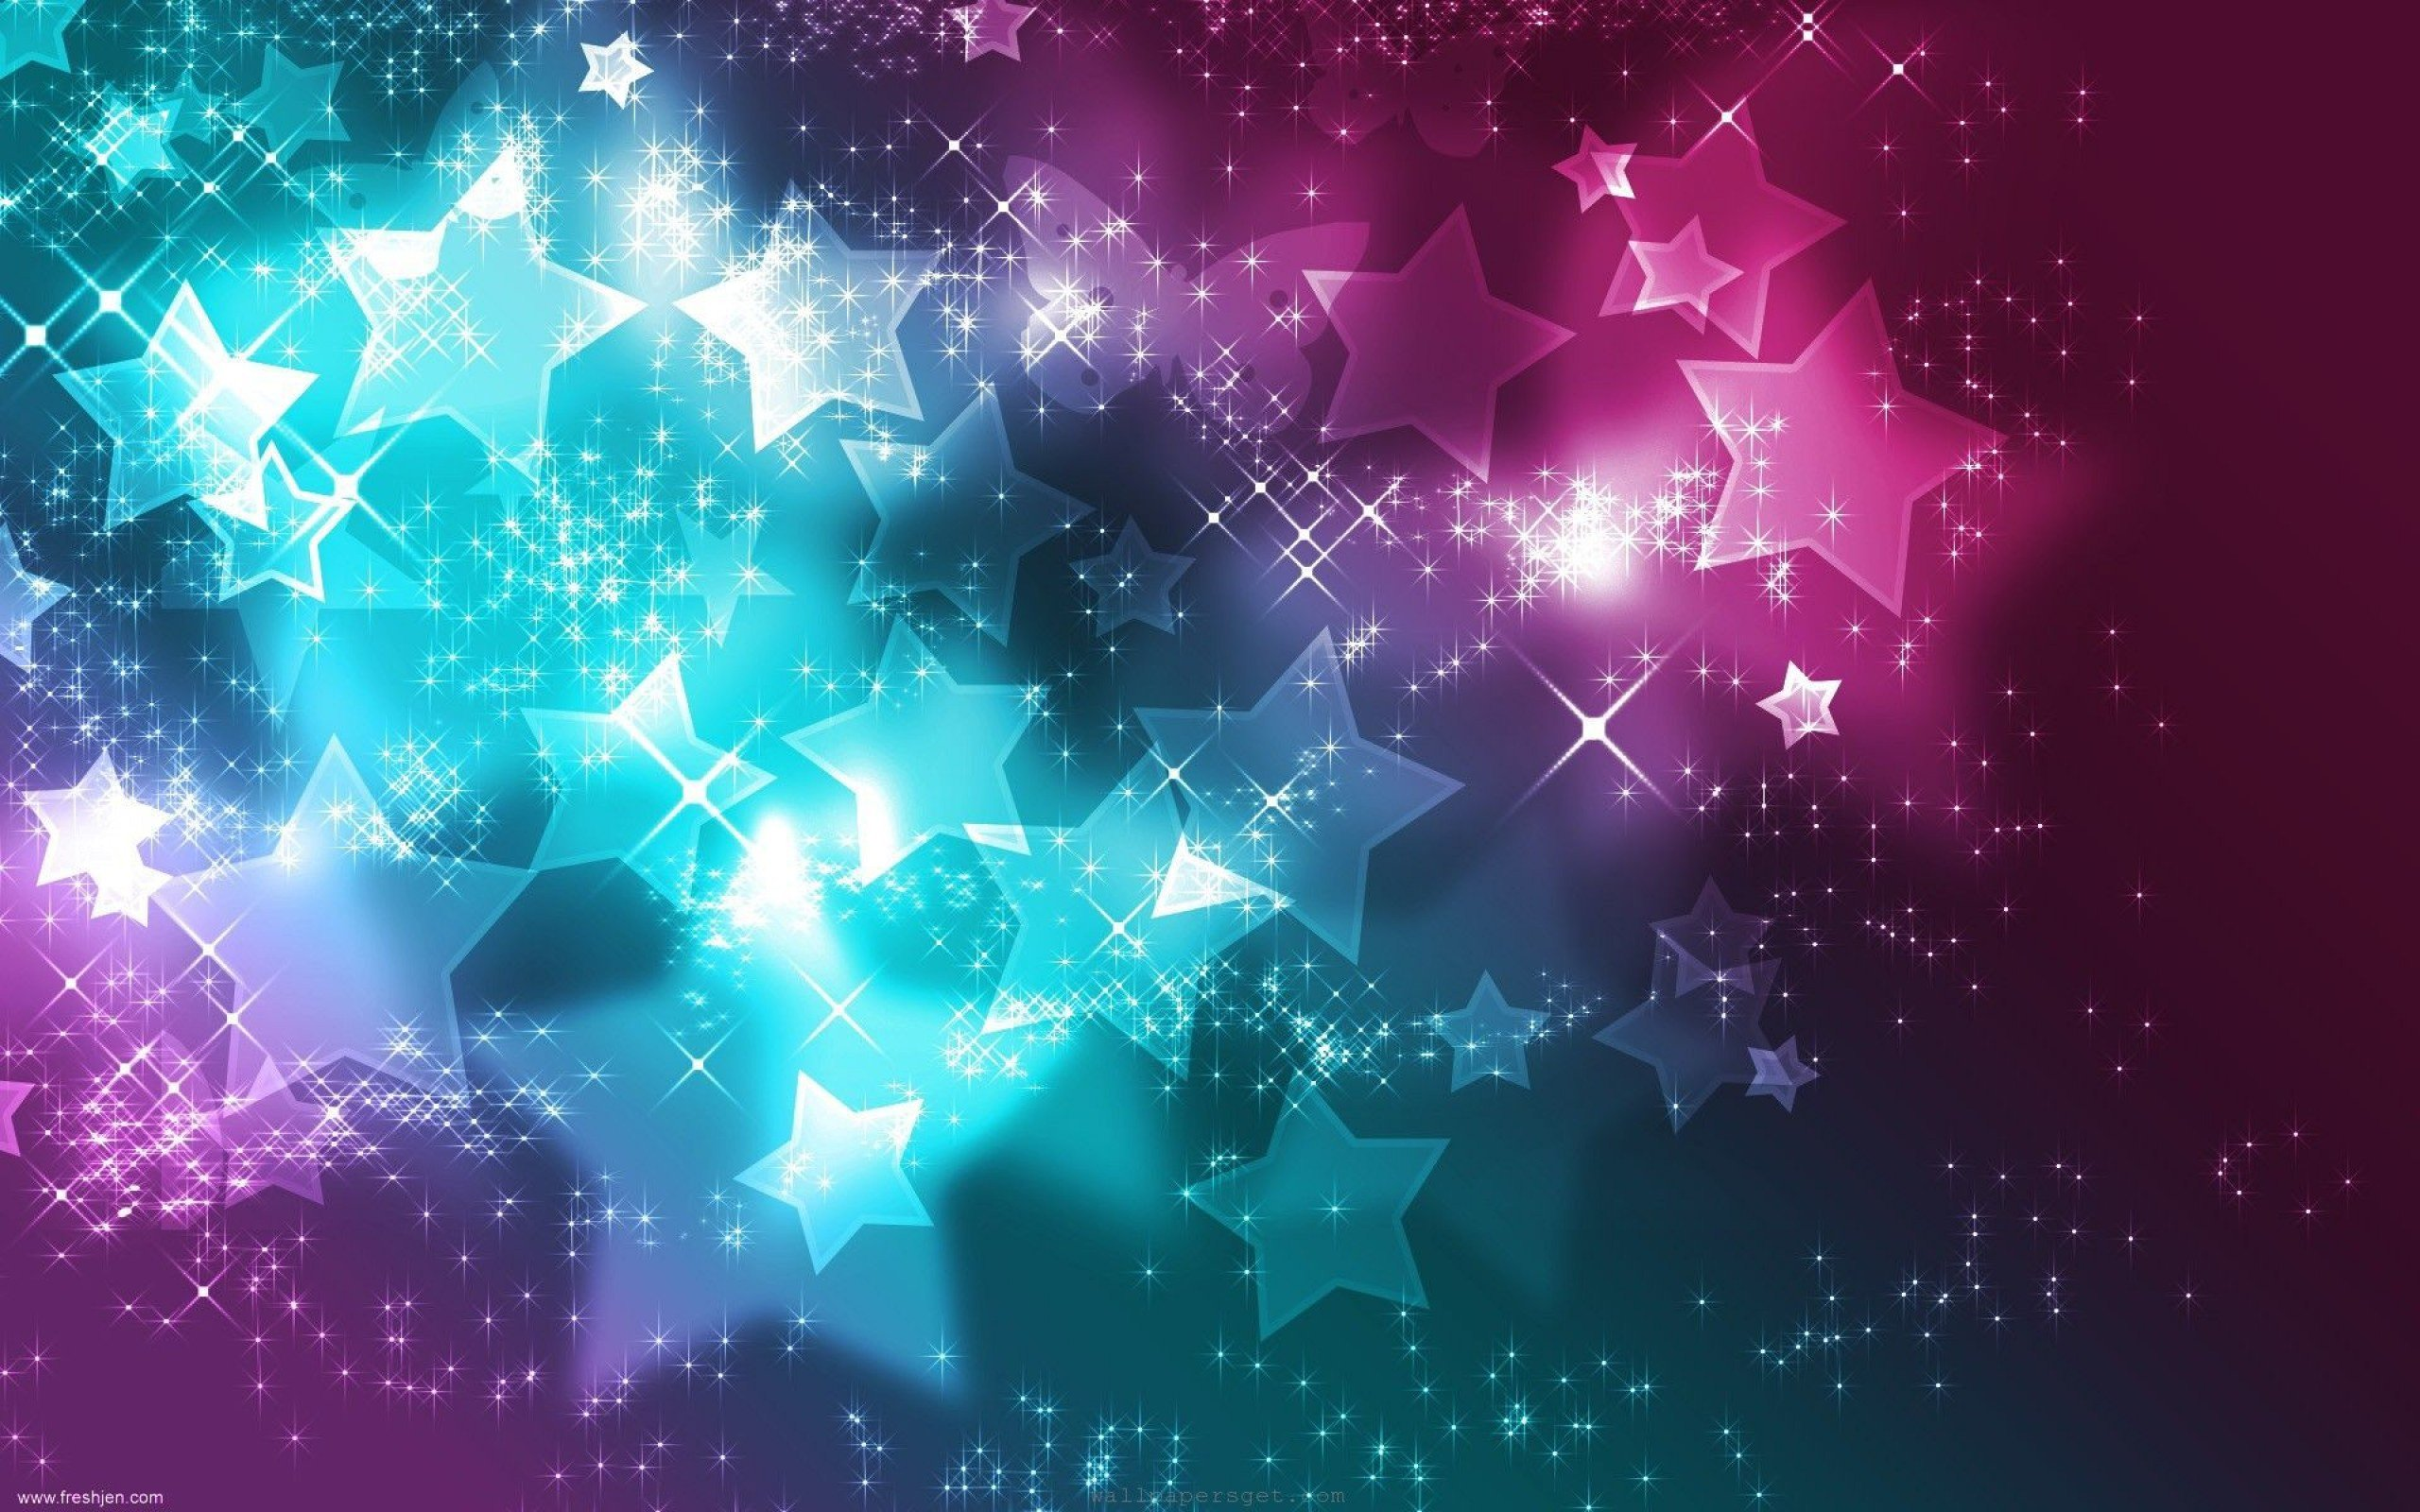 sparkle-fresh-girly-abstract-background-wallpaper